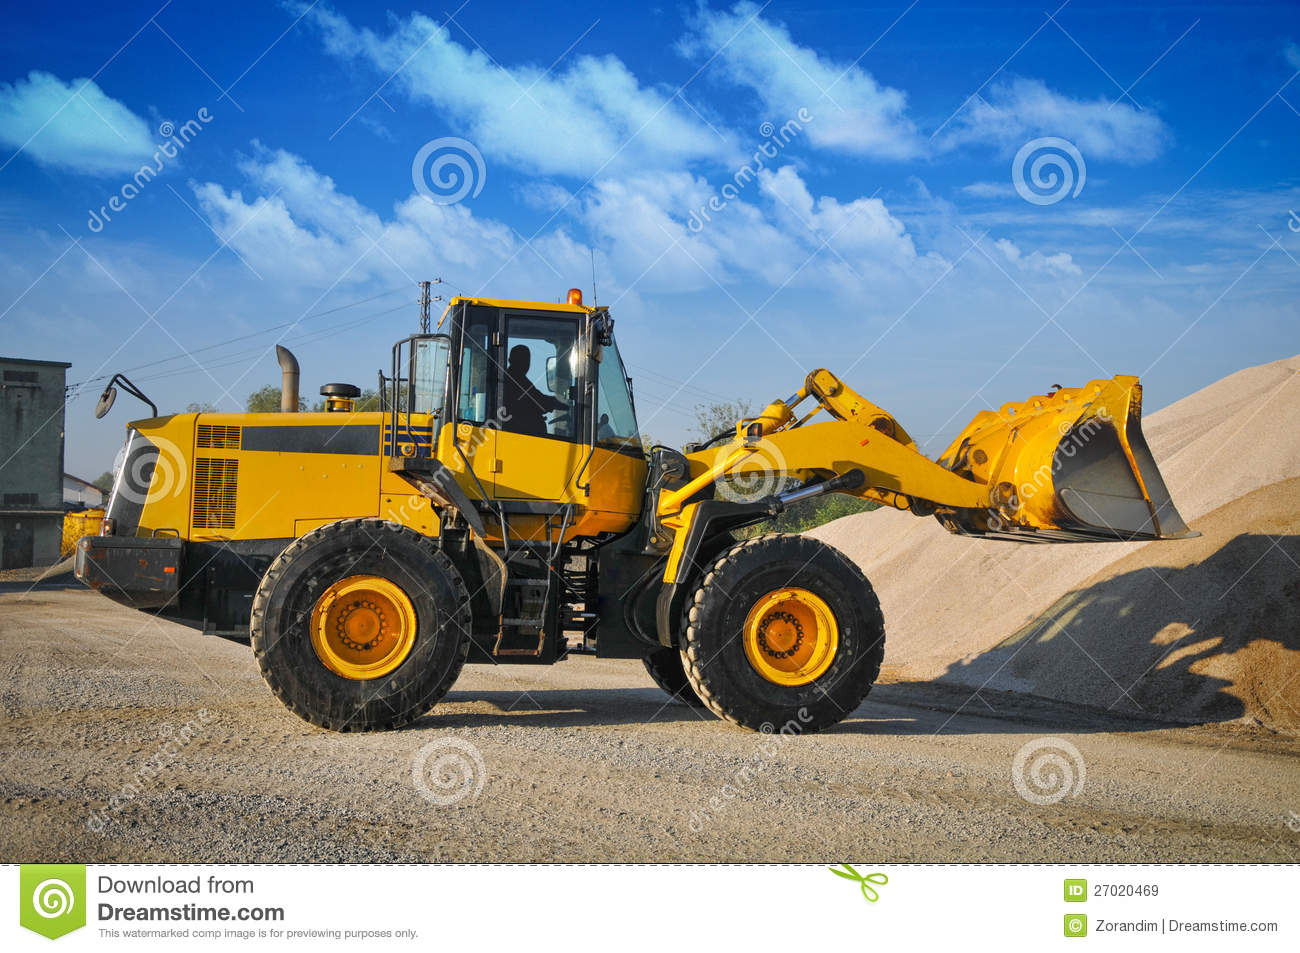 Free stock images loader excavator construction machinery equipment